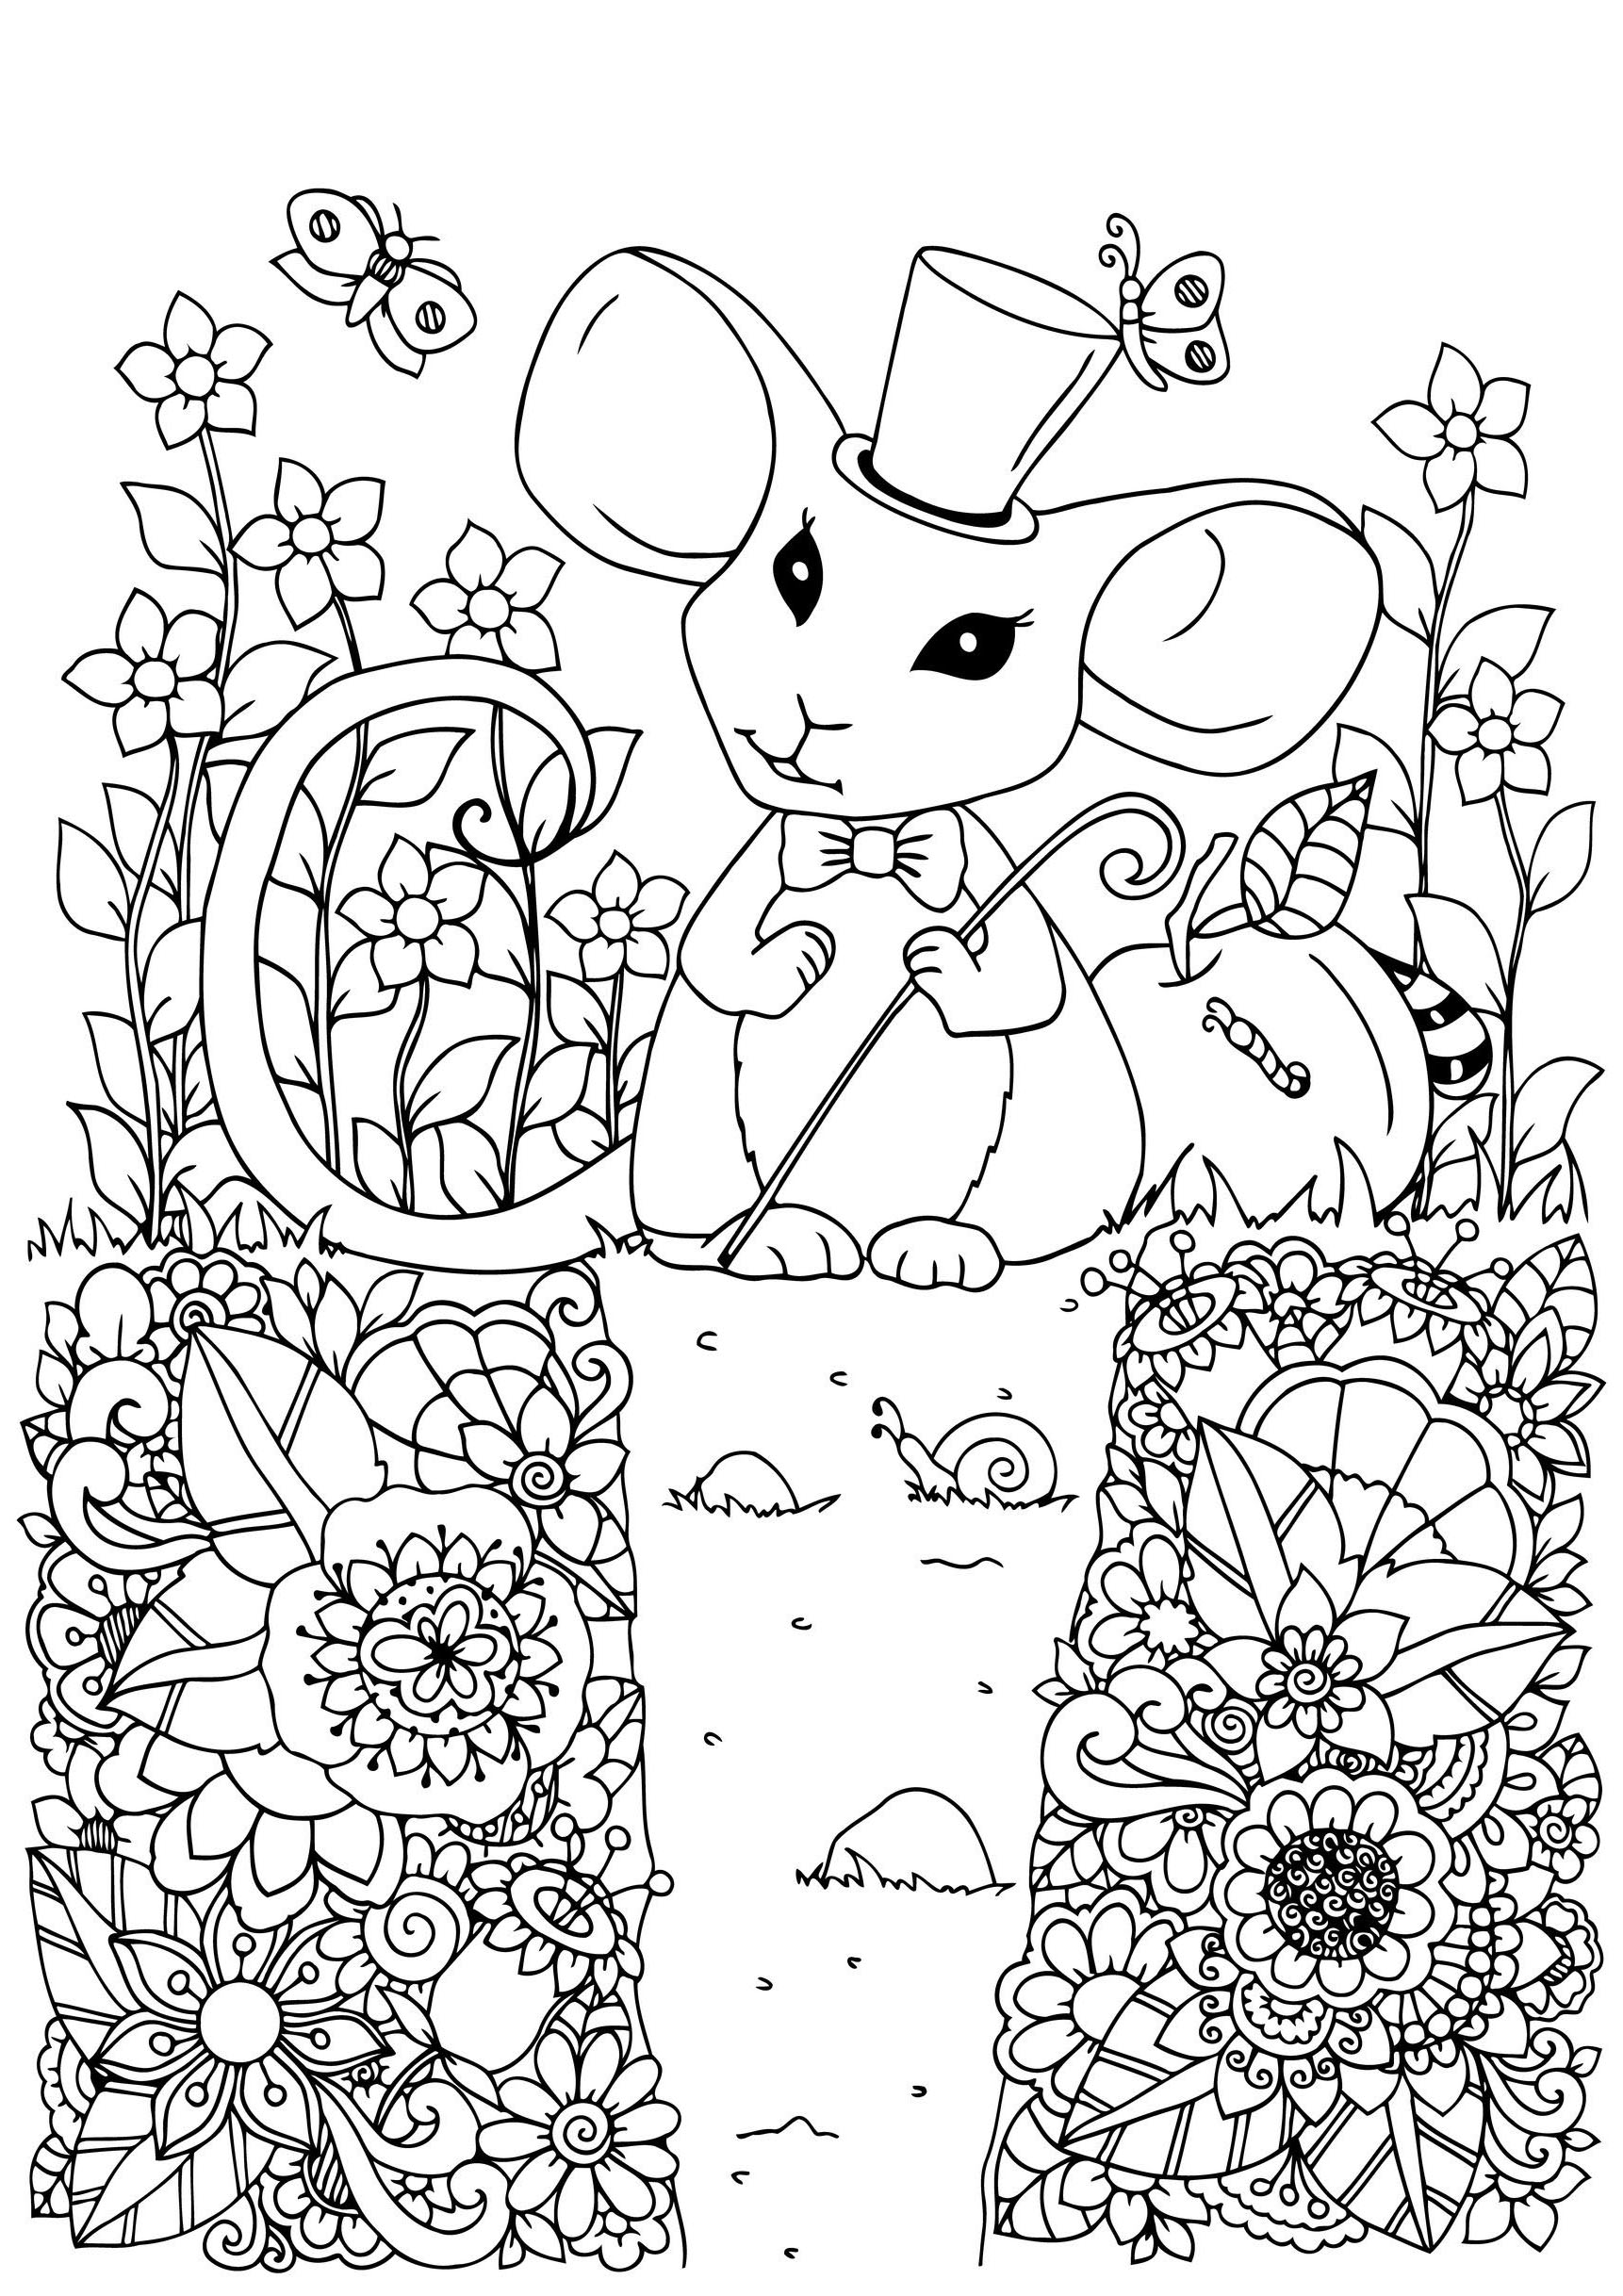 coloring printable pages for kids free printable frozen coloring pages for kids best kids pages for coloring printable